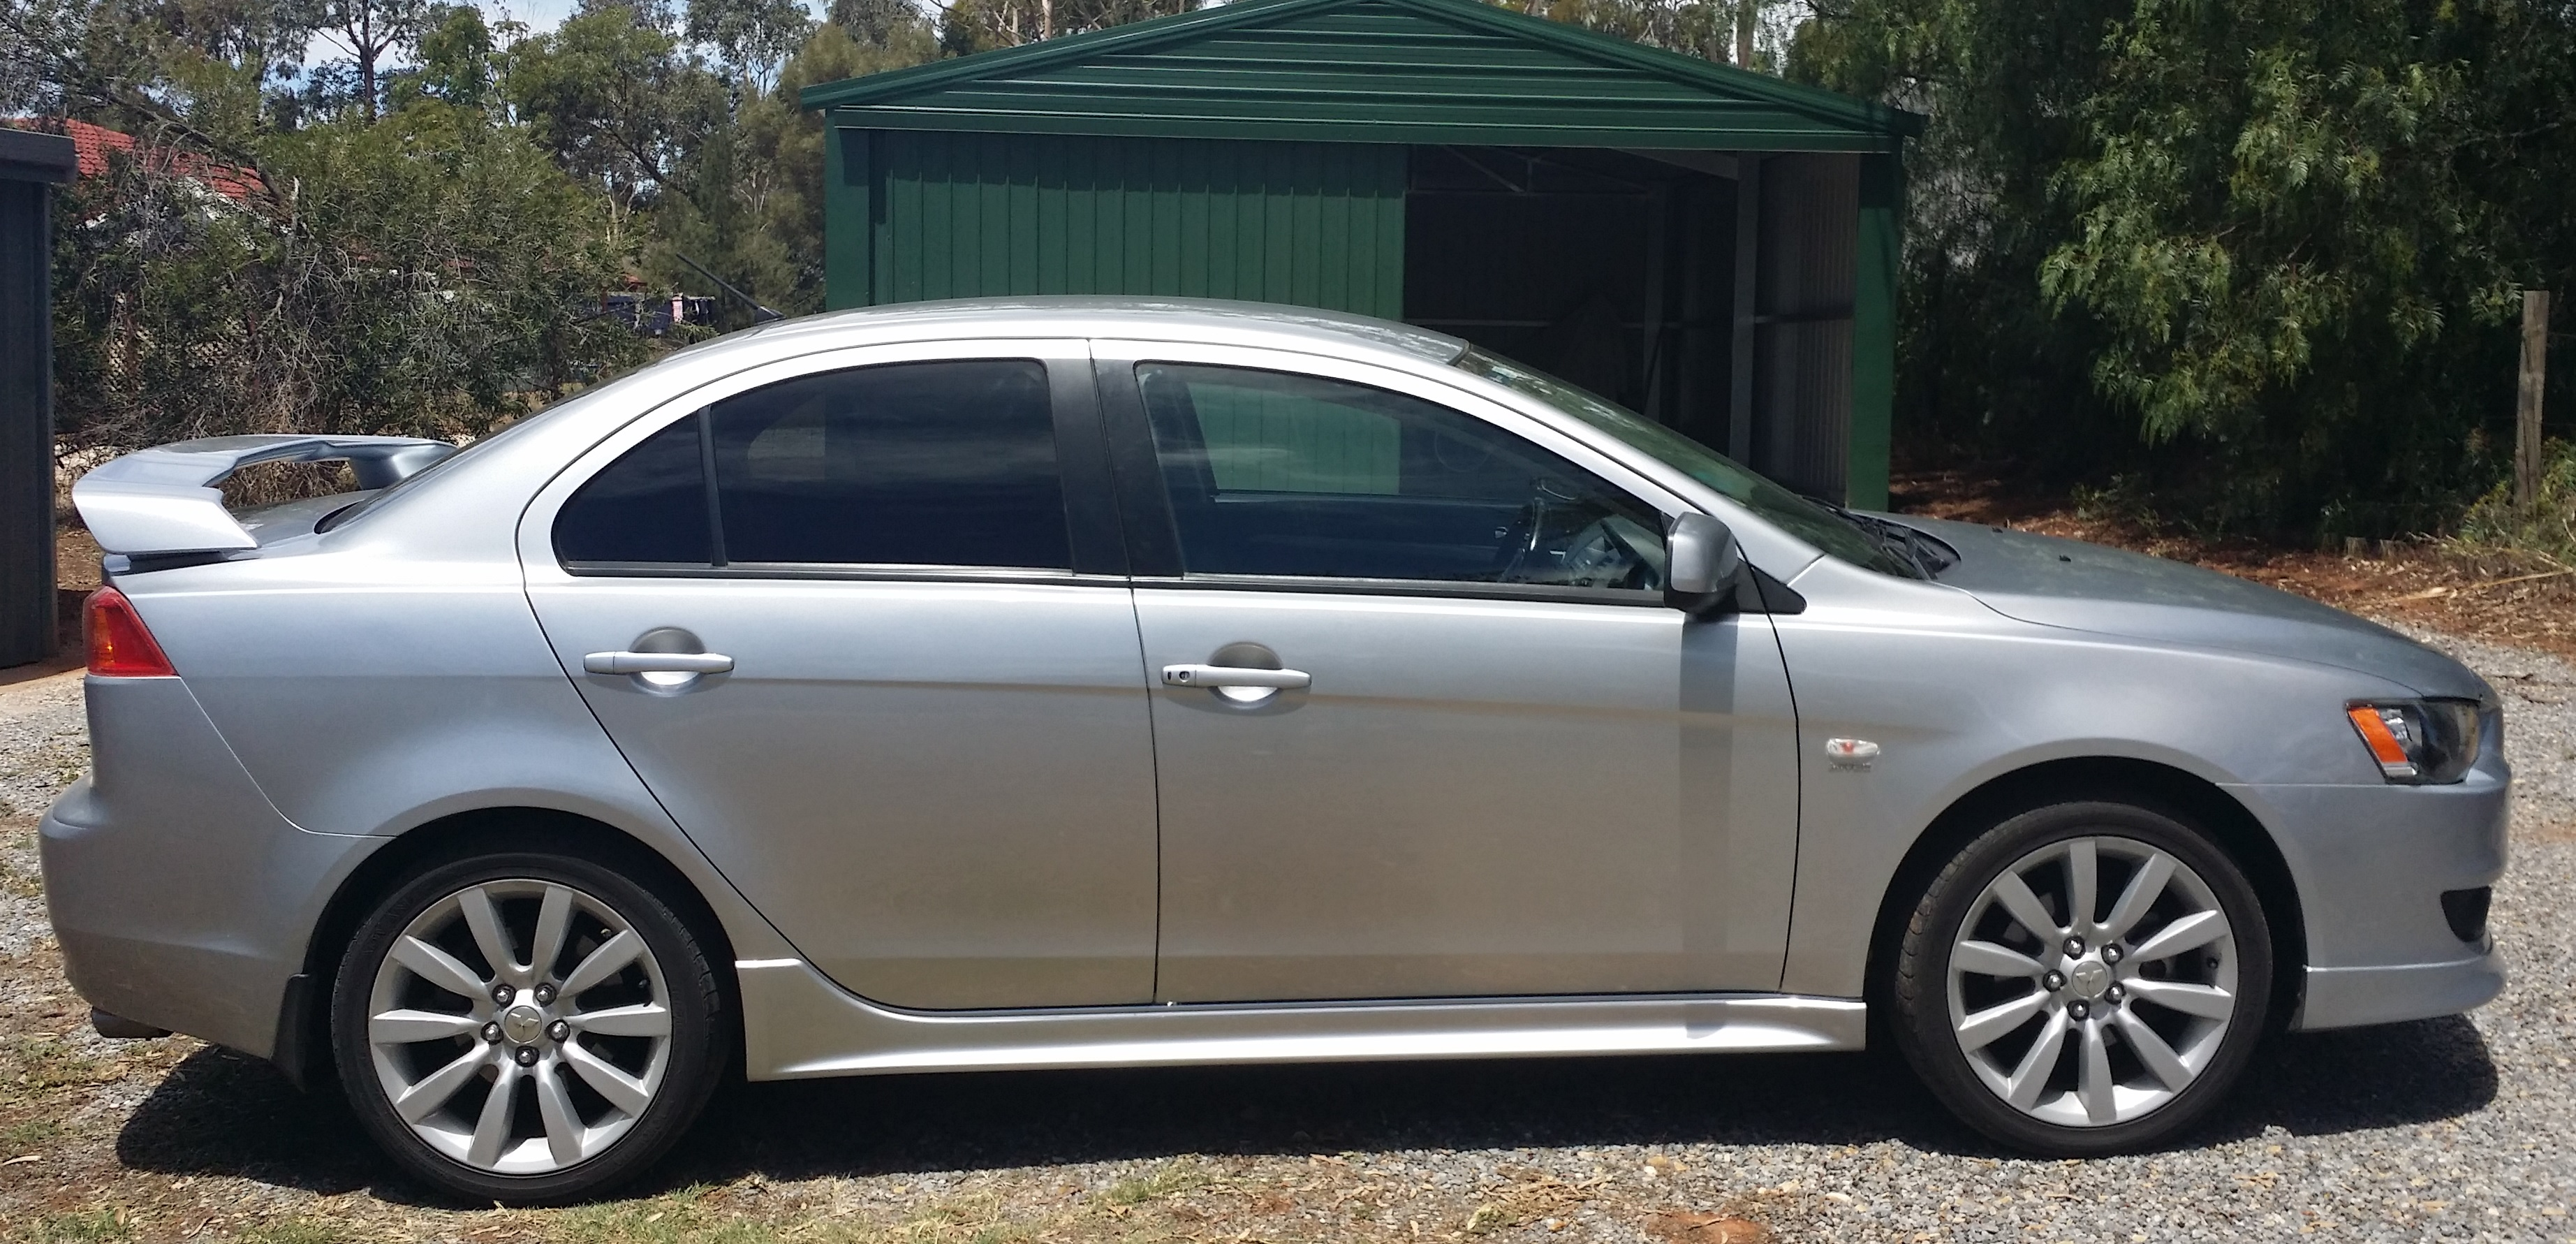 Mitsubishi lancer vrx for sale